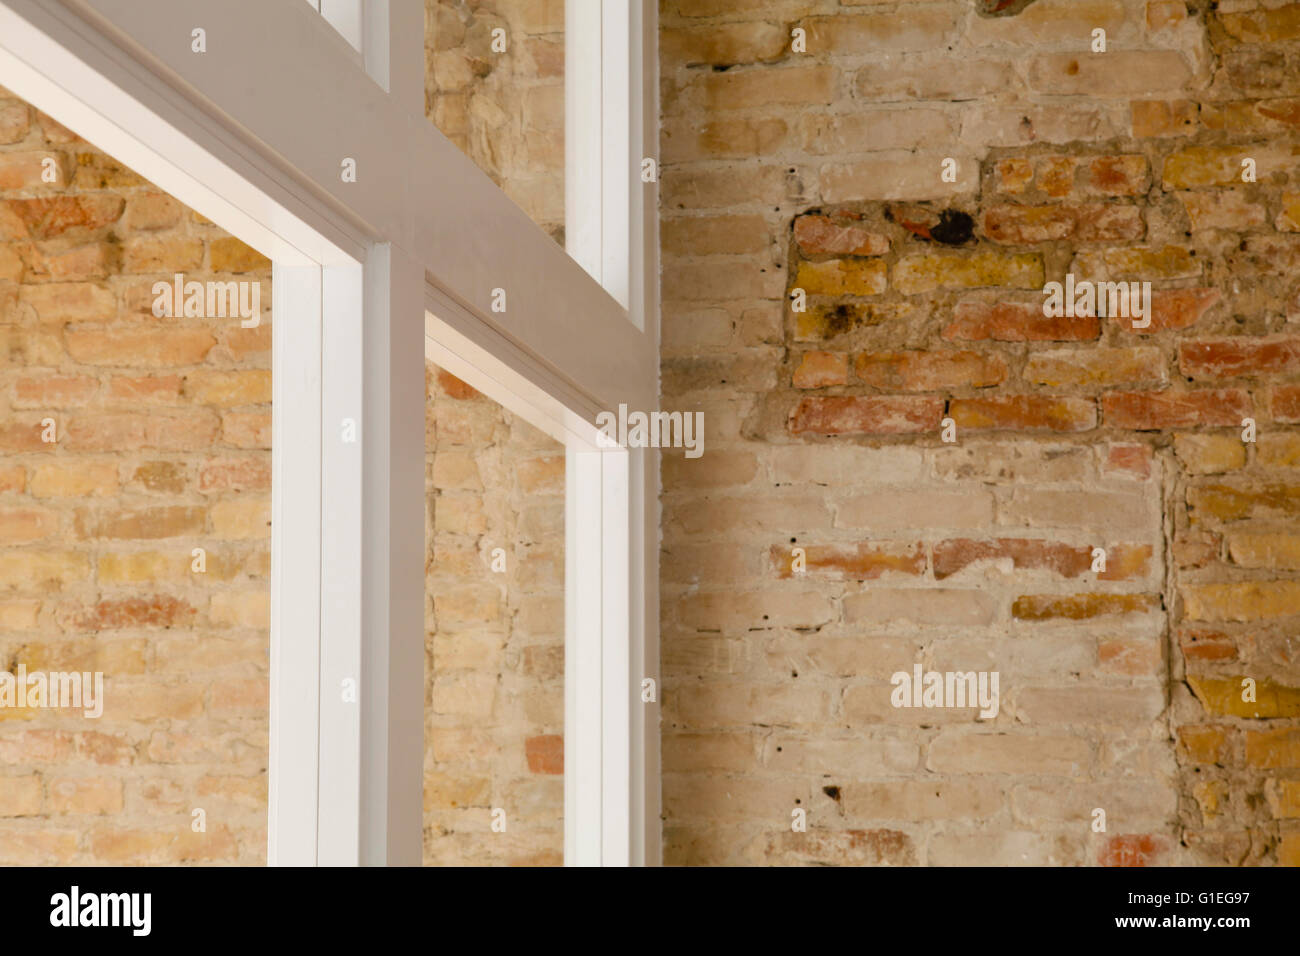 Buro, 53 Reichenberger Strasse. Partial view of an exposed brick wall within the building. - Stock Image